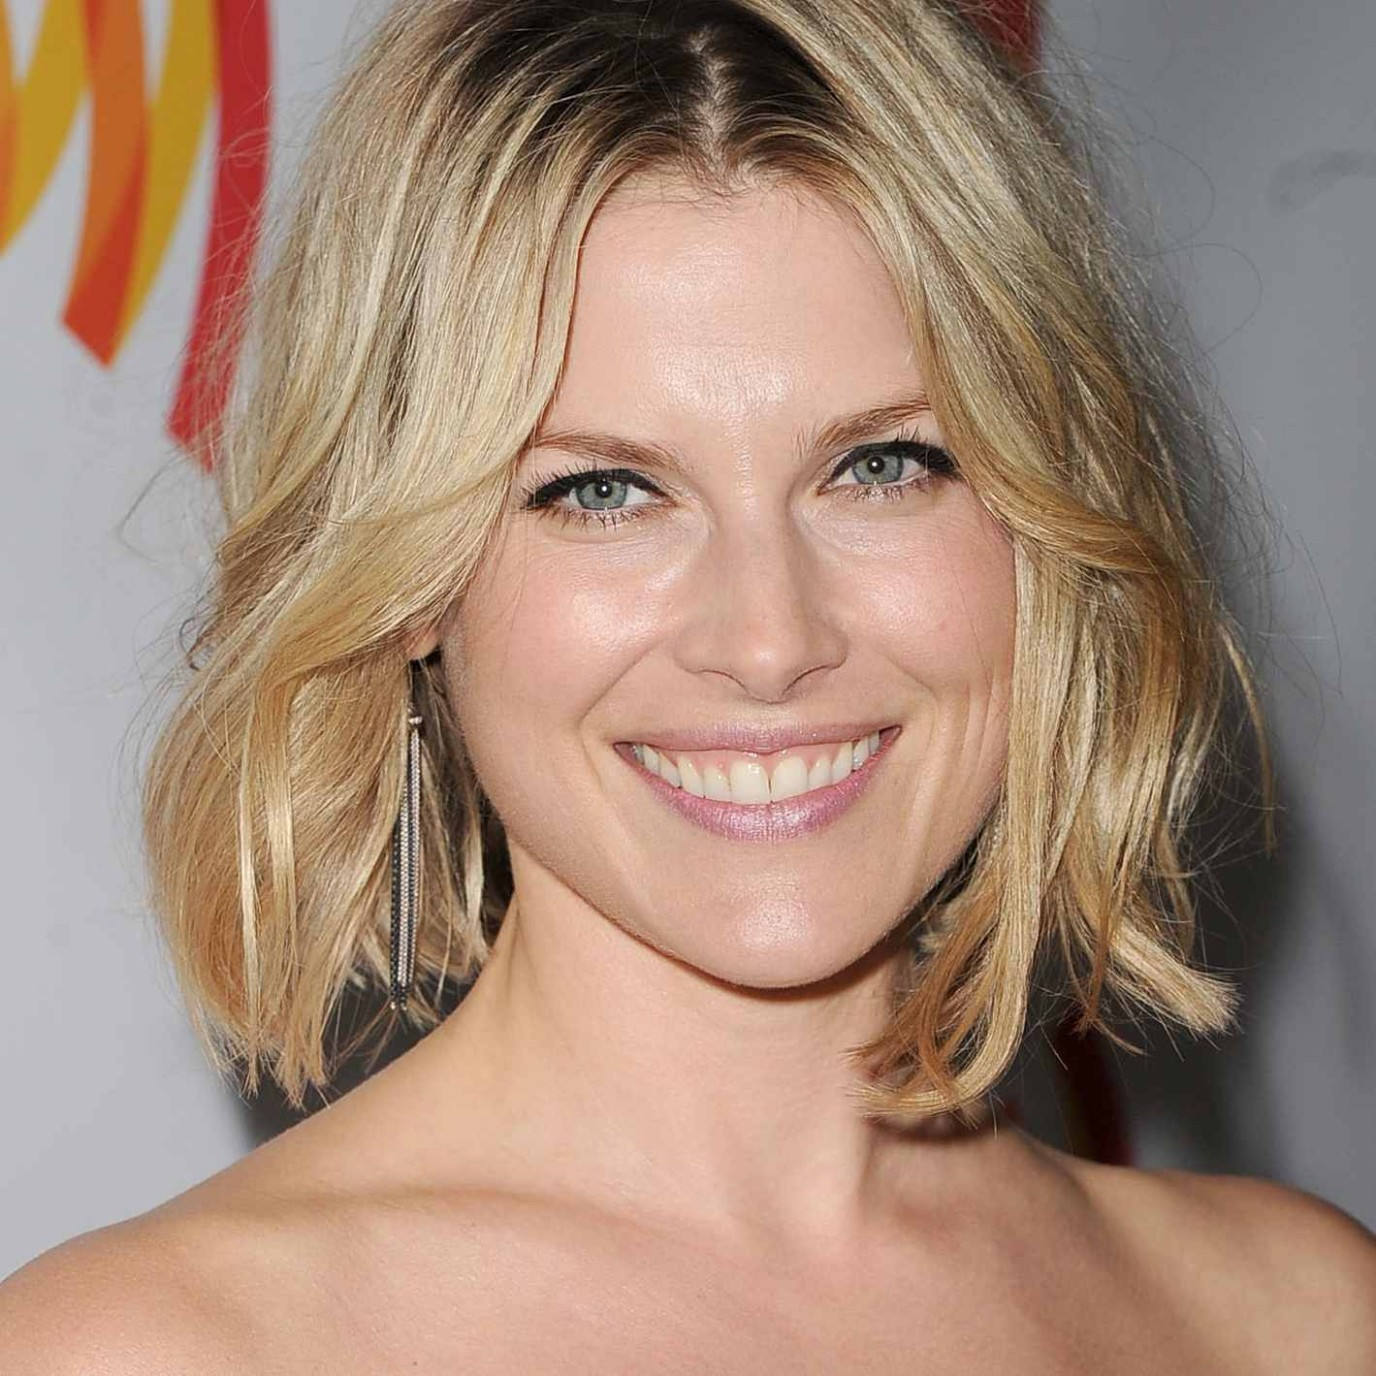 8 Flattering Hairstyles For Heart Shaped Faces Bob For Heart Shaped Face